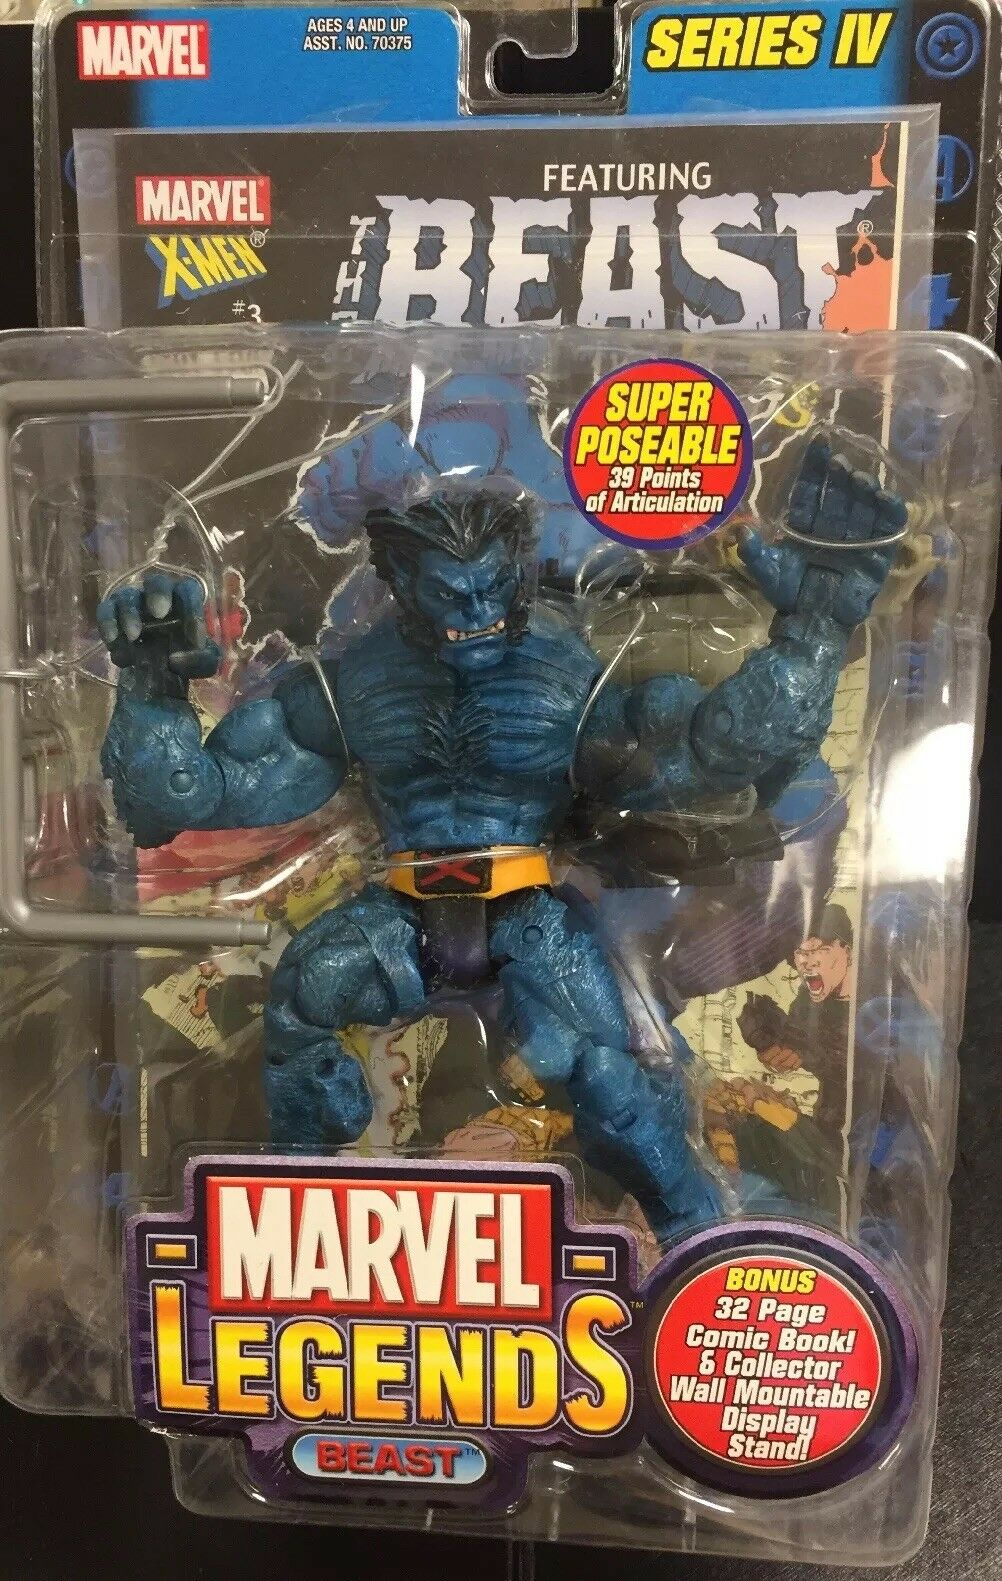 Marvel Legends X Men Series 4 IV Super Poseable Poseable Poseable 6  Inch Beast Action Figure bbc8f5